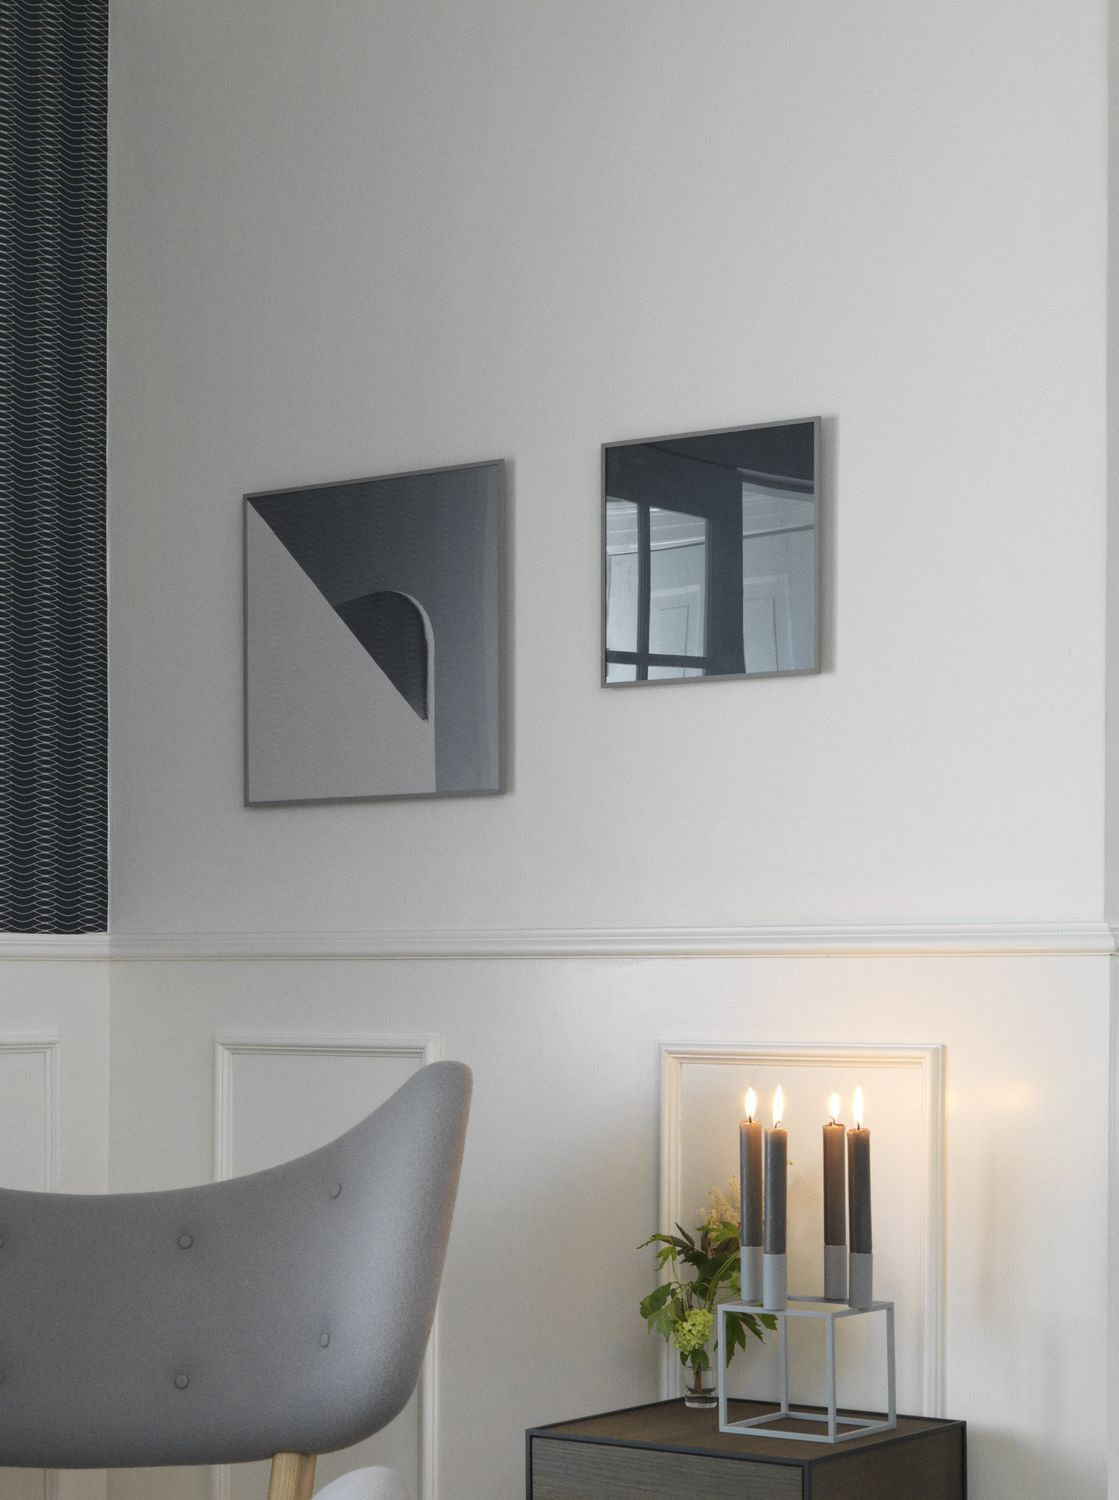 Wall mounted mirror bedroom contemporary square view by wall mounted mirror bedroom contemporary square view by lassen amipublicfo Choice Image